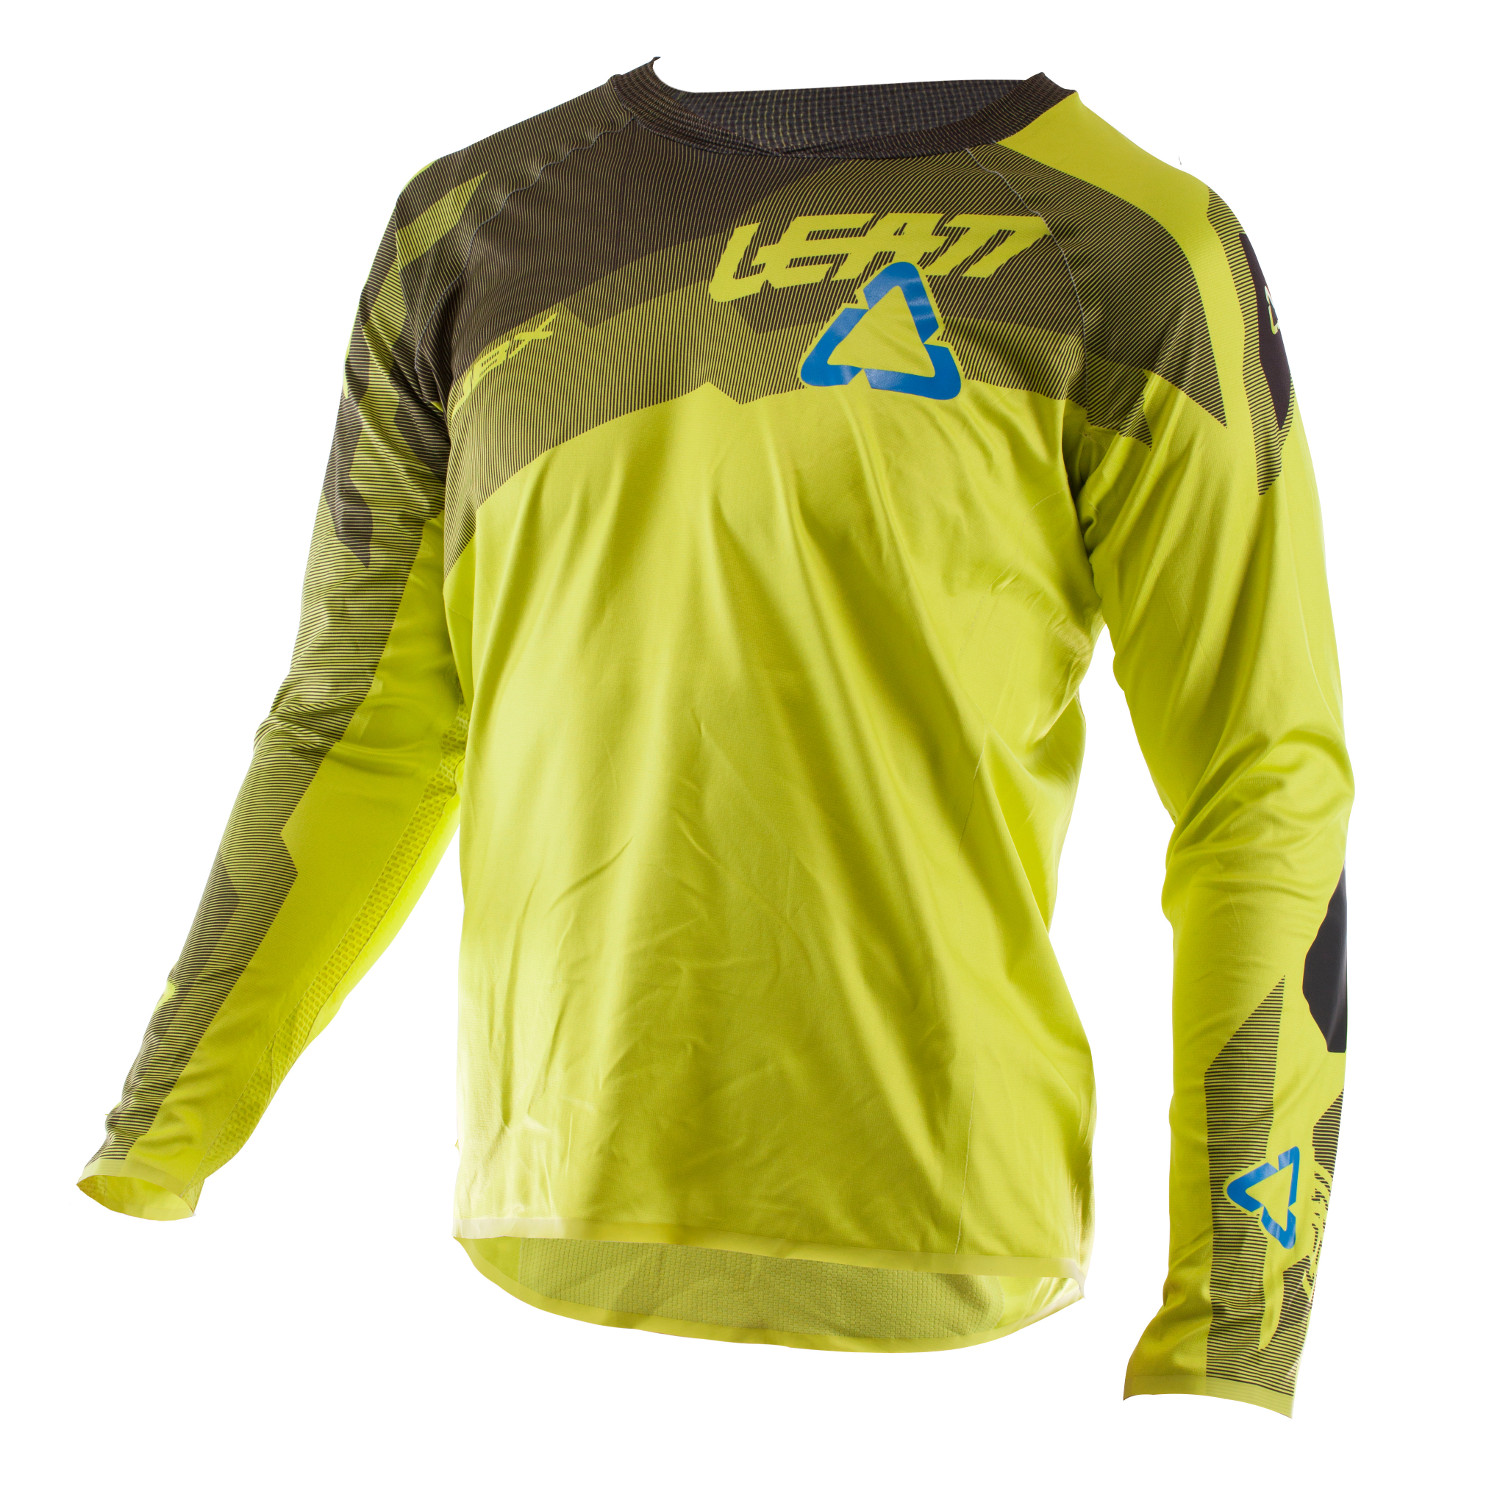 Leatt Downhill Jersey DBX 5.0 All Mountain Lime 2018  d373093bd